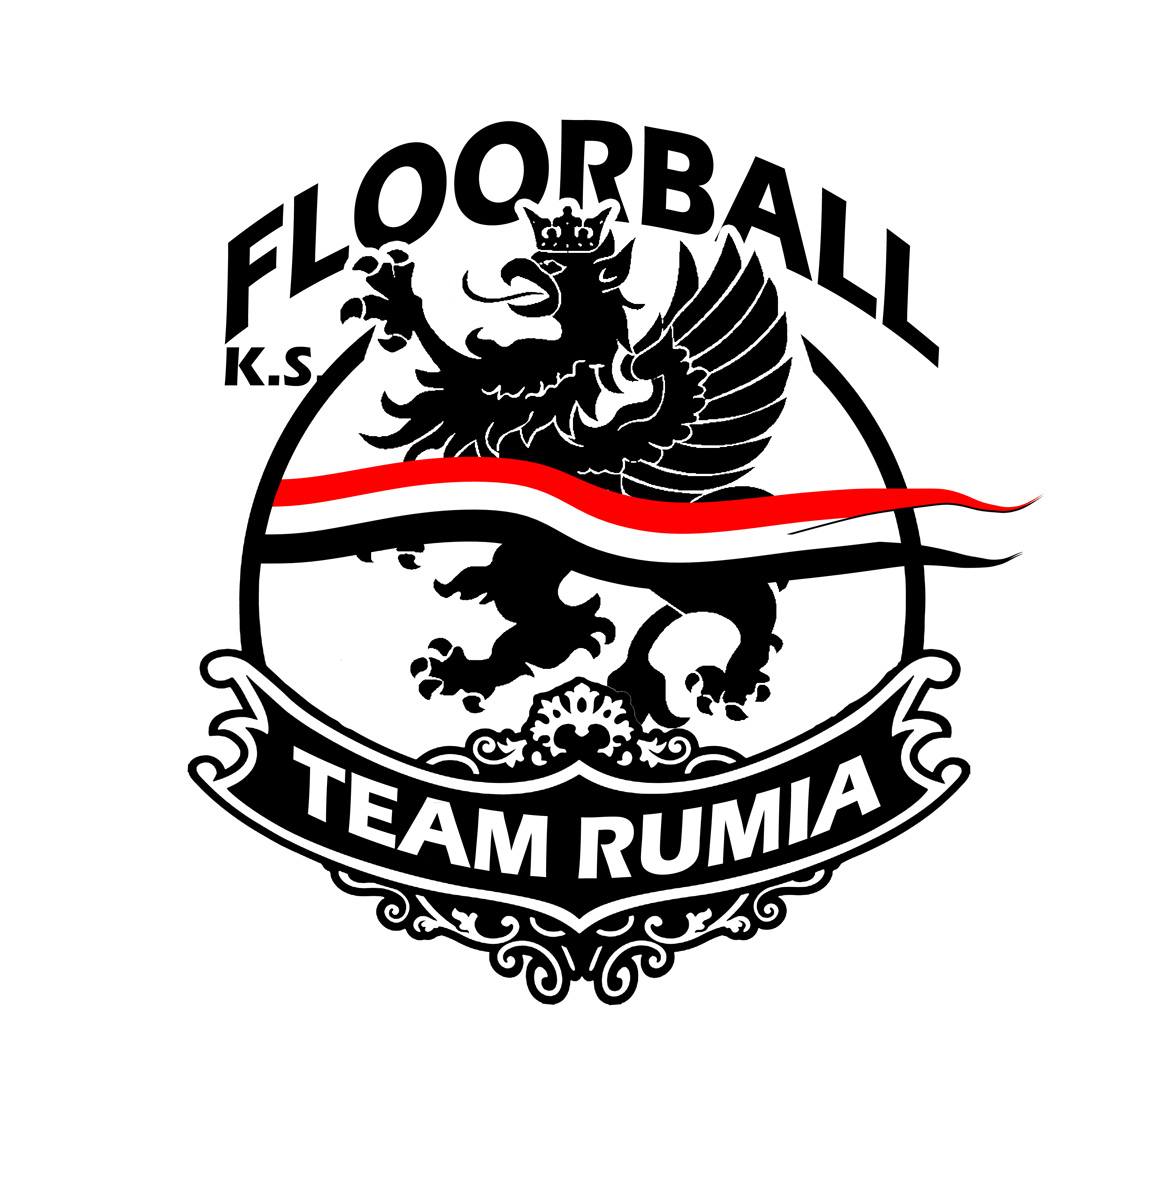 Floorball Team Rumia